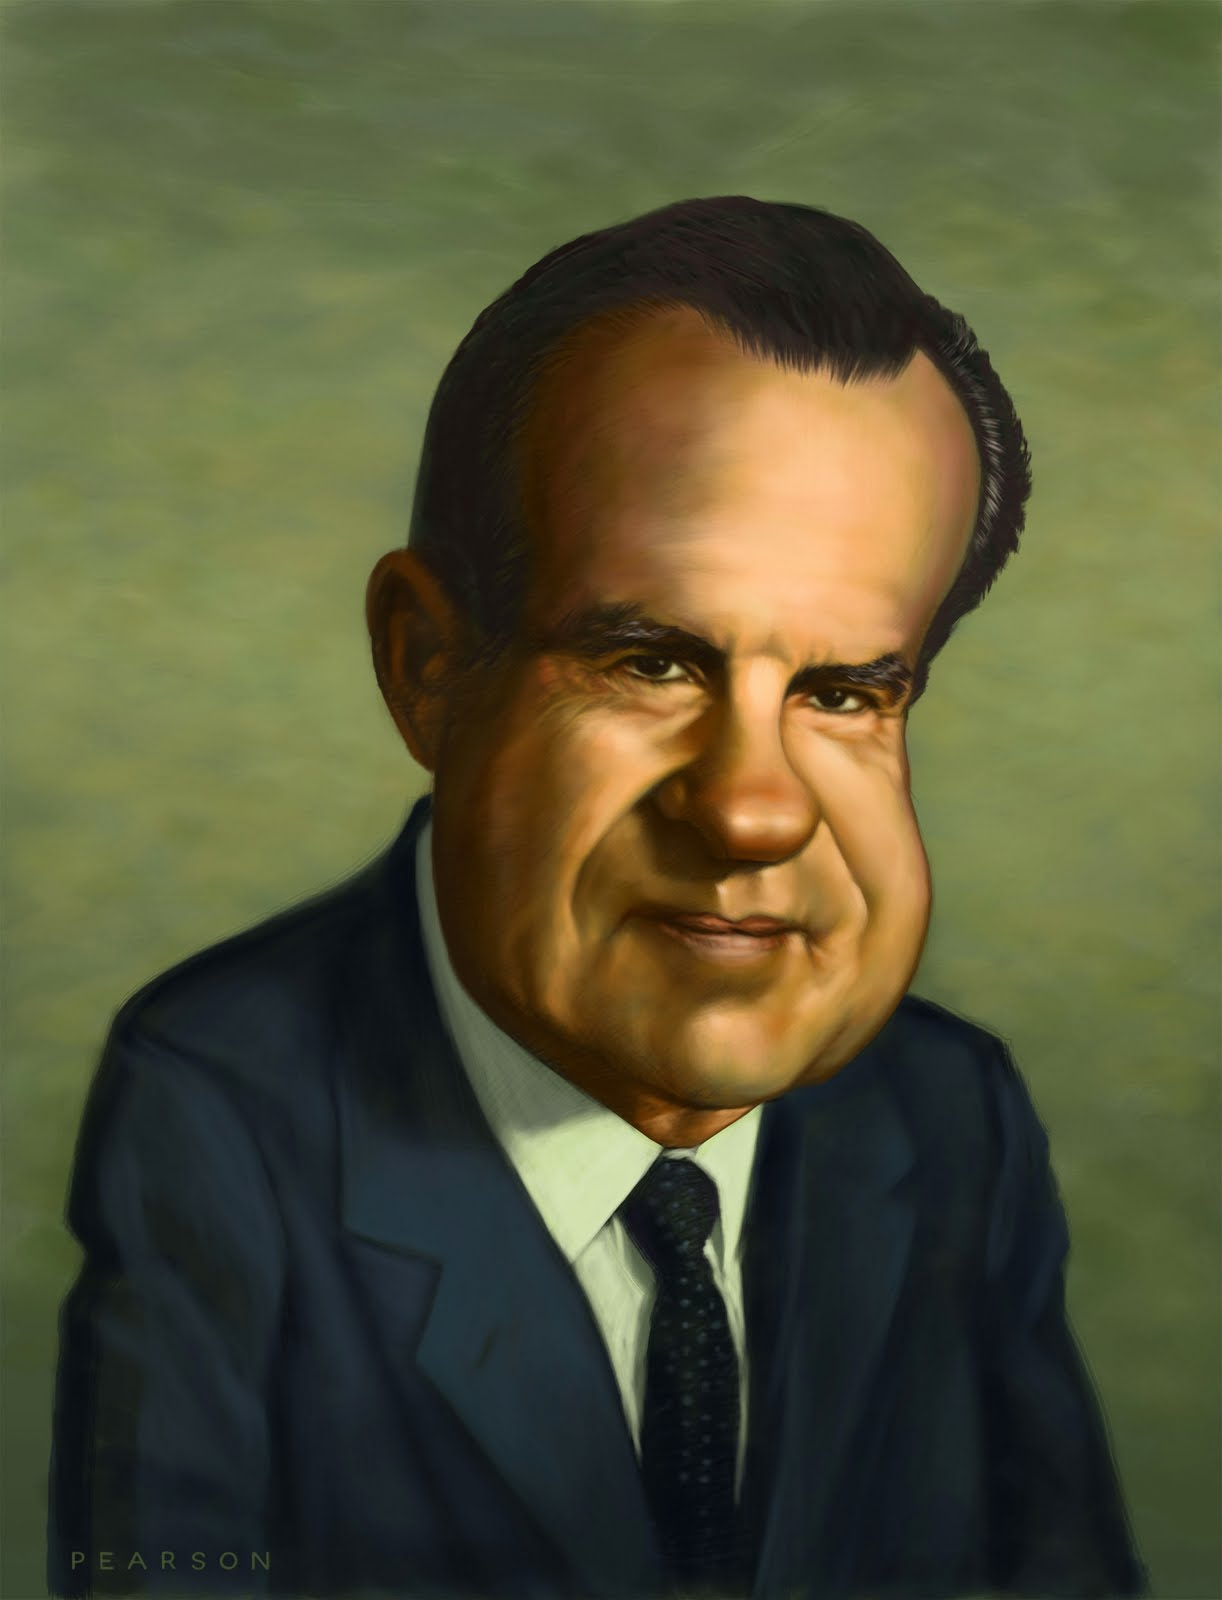 draw sharpen repeat richard nixon bad president richard nixon bad president